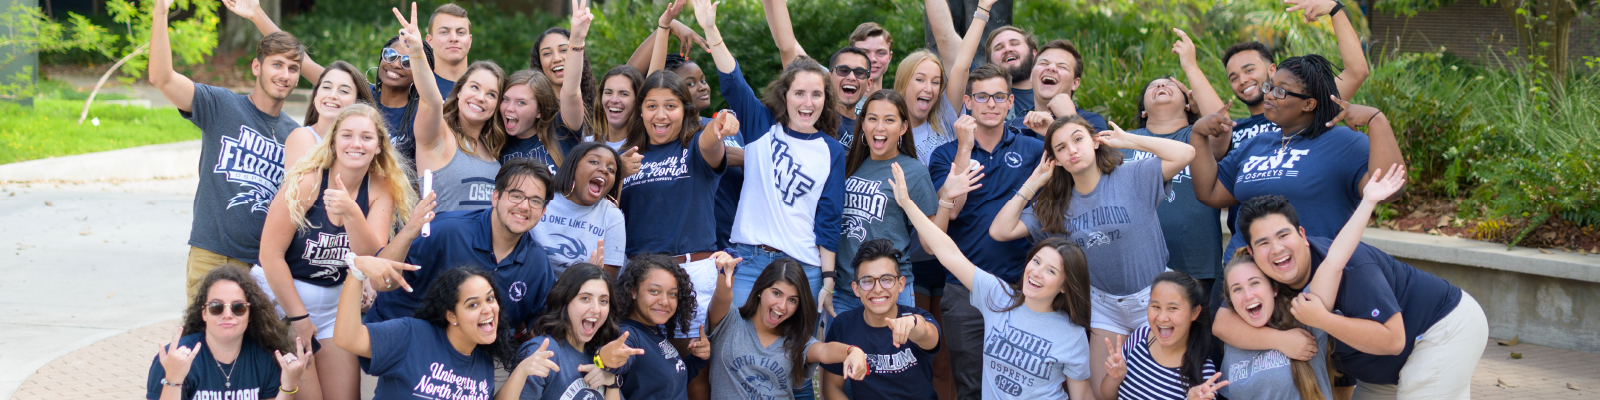 Large group of students in UNF apparel huddled together making silly faces